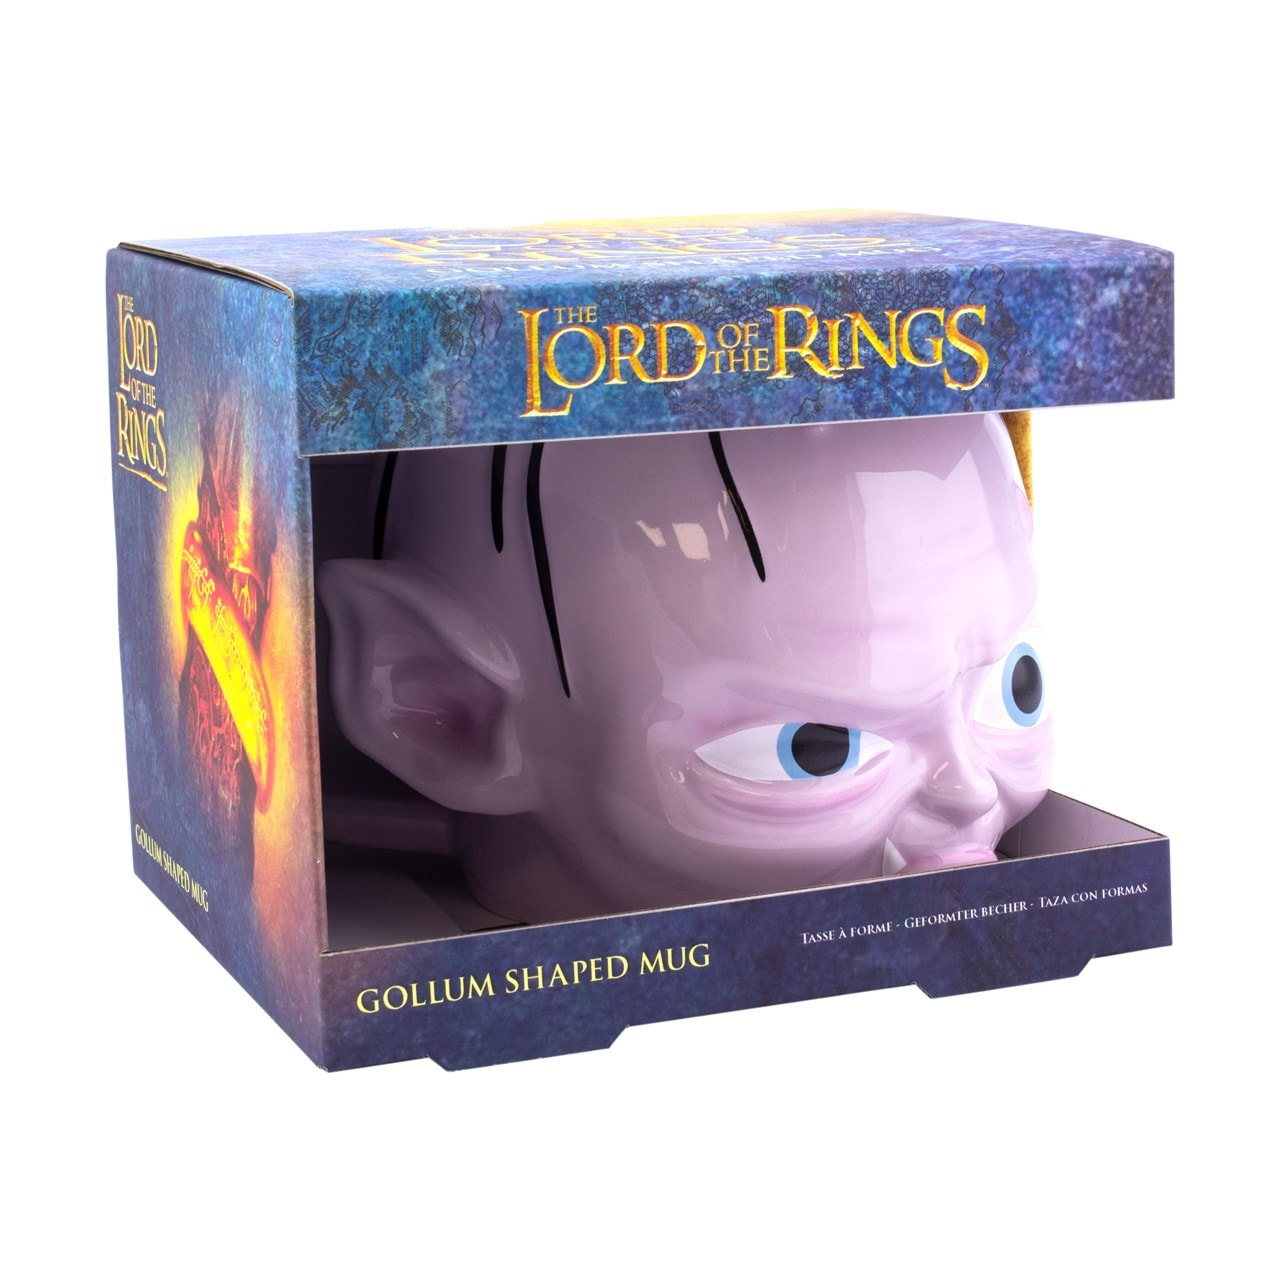 The Lord Of The Rings Gollum Shaped Mug - 2